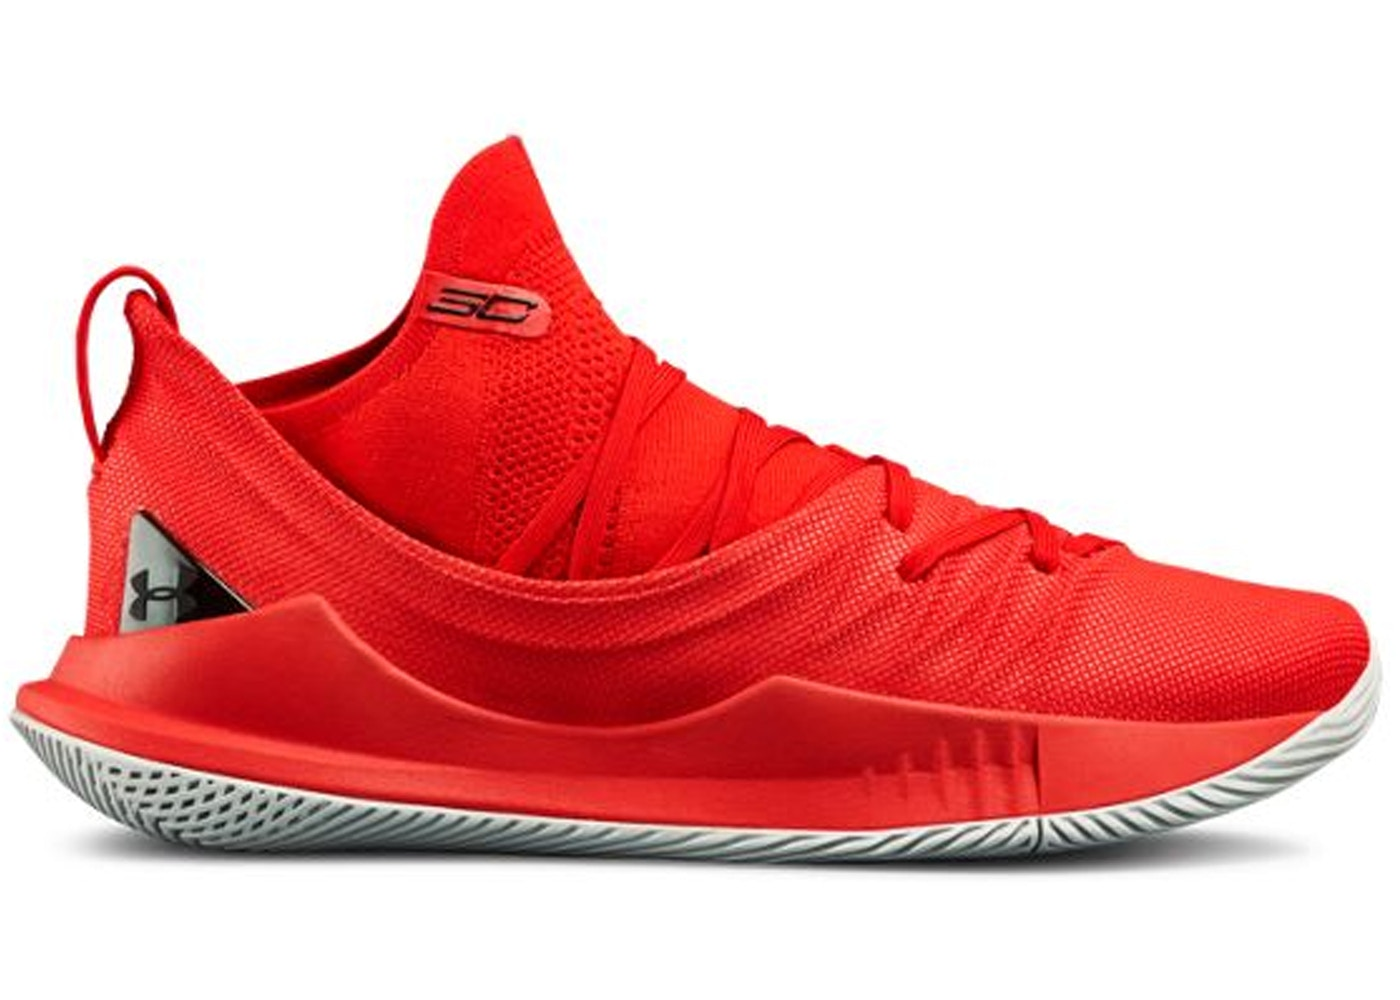 5c151f51846f Under Armour Curry 5 Wired Different - 3020657-600